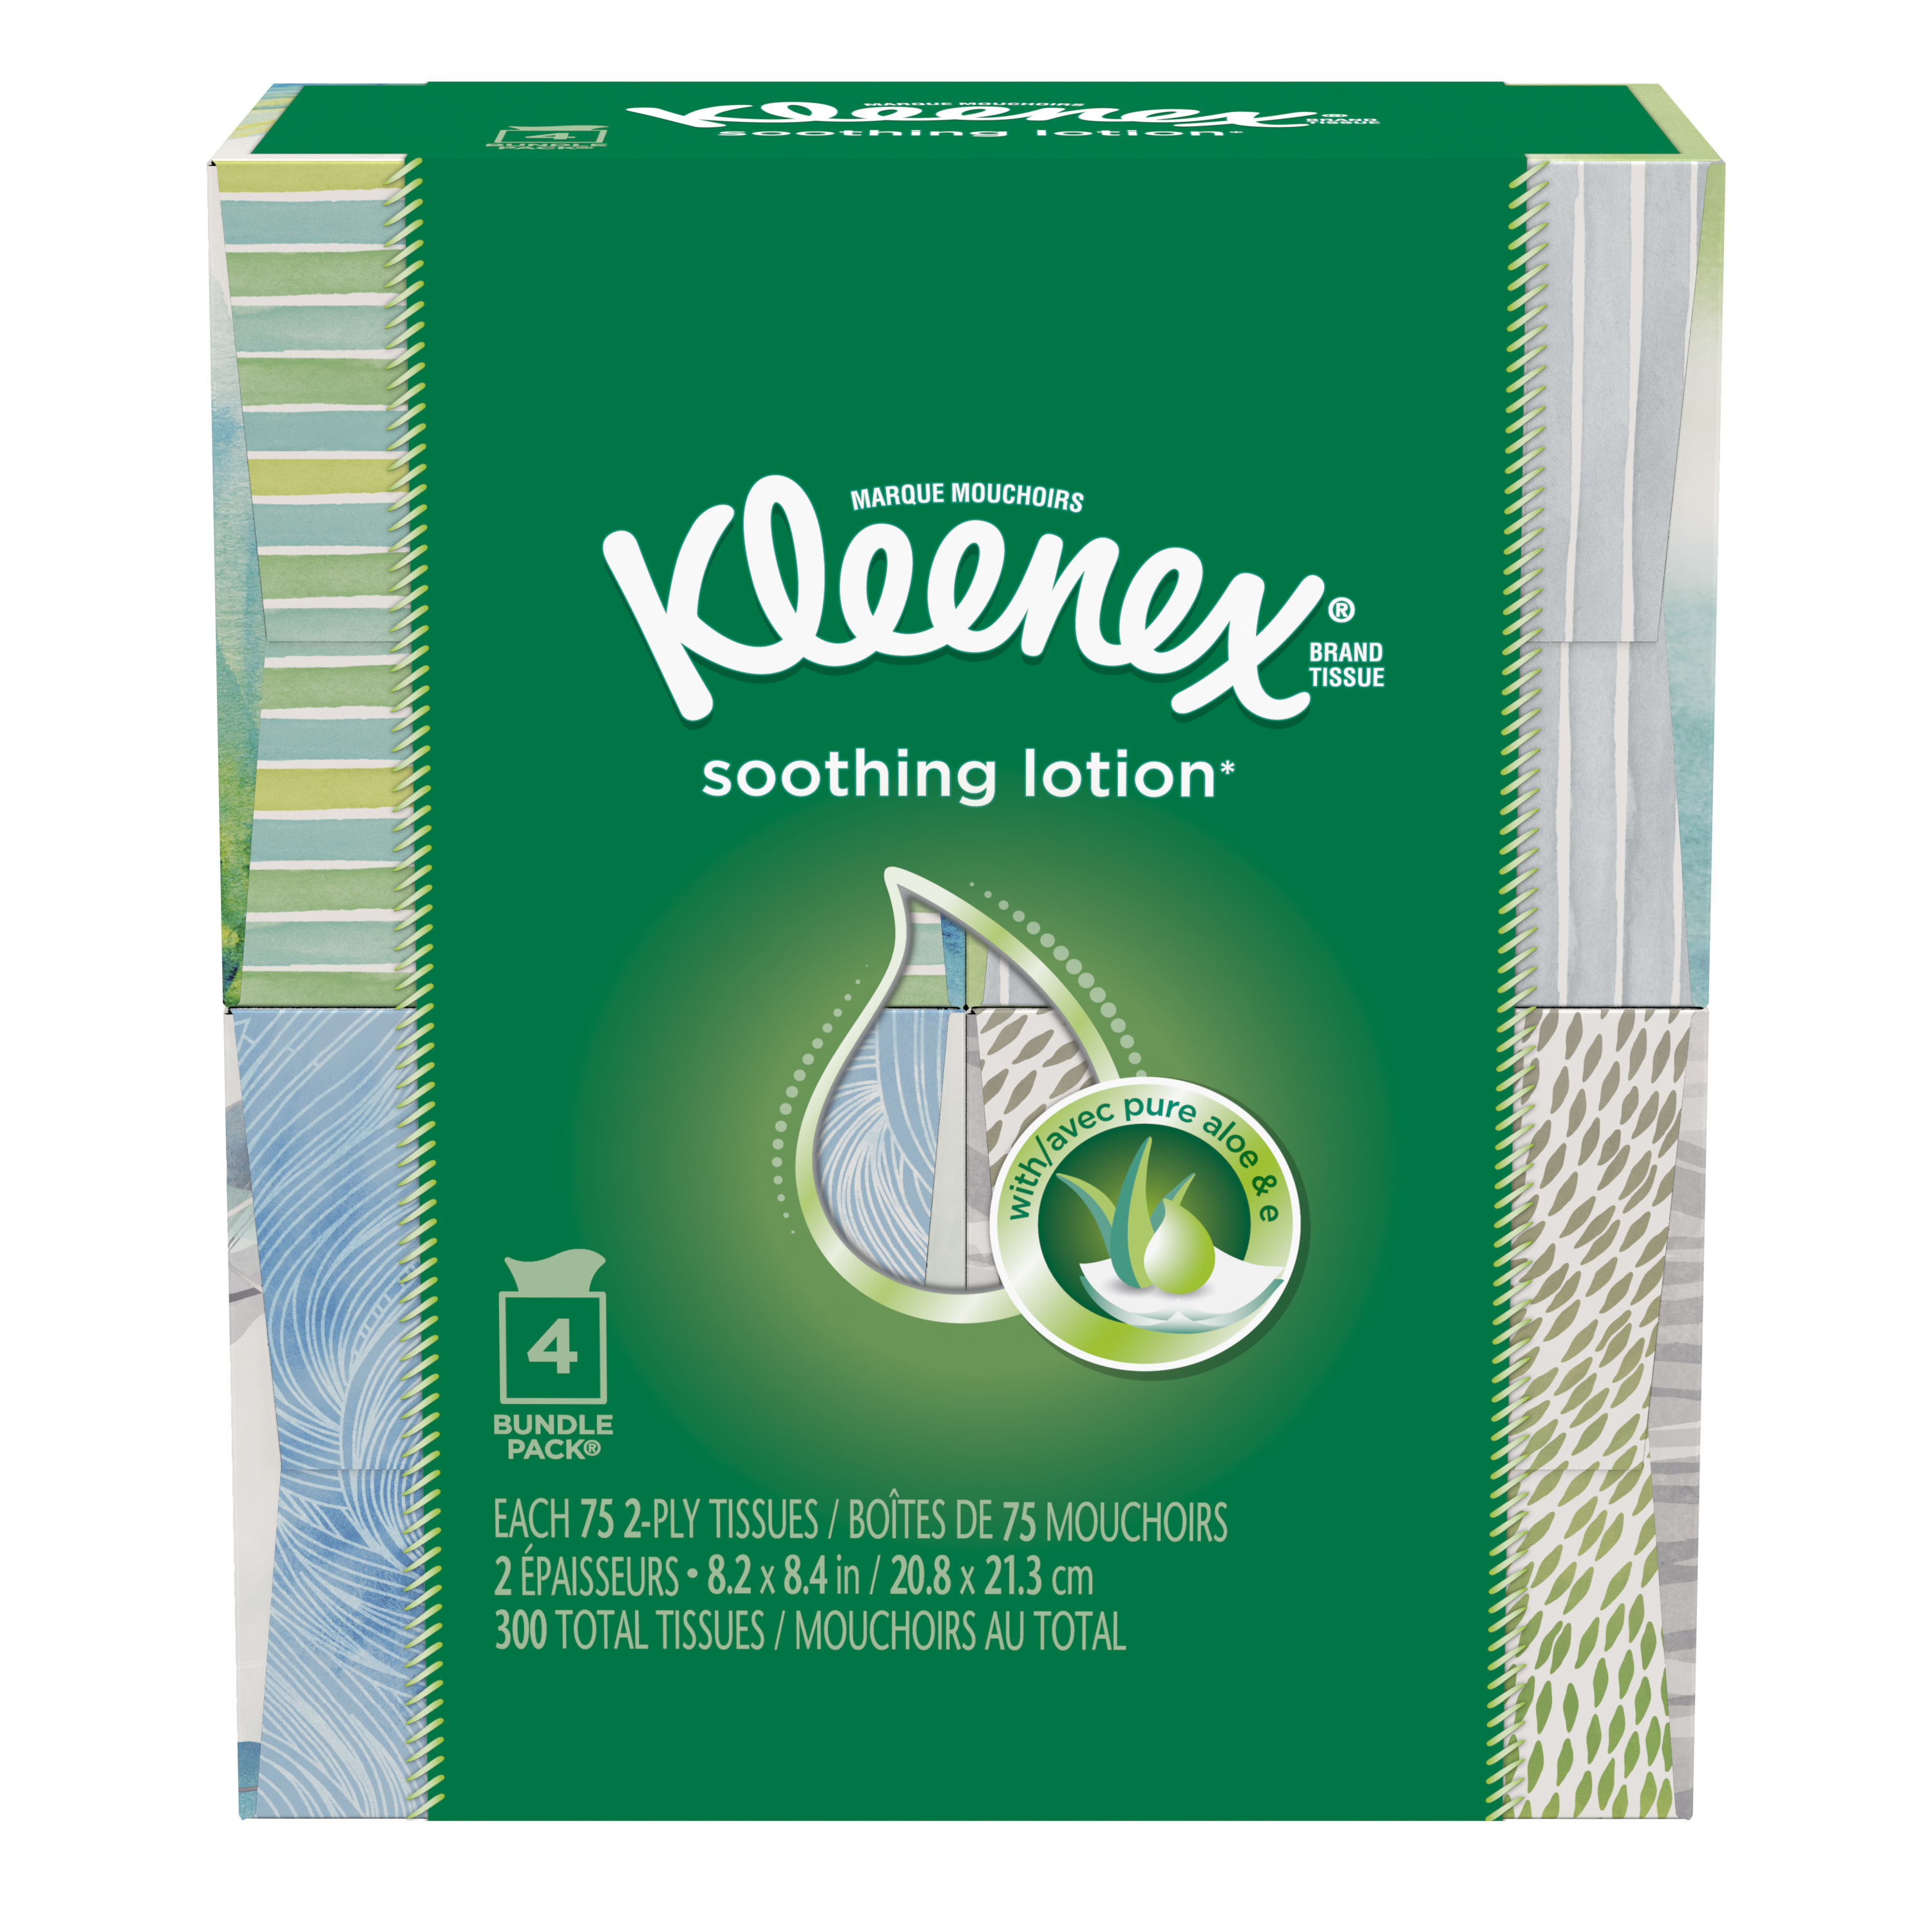 Kleenex with Lotion,75 sheets per Cube, 4 Pack, Facial Tissues